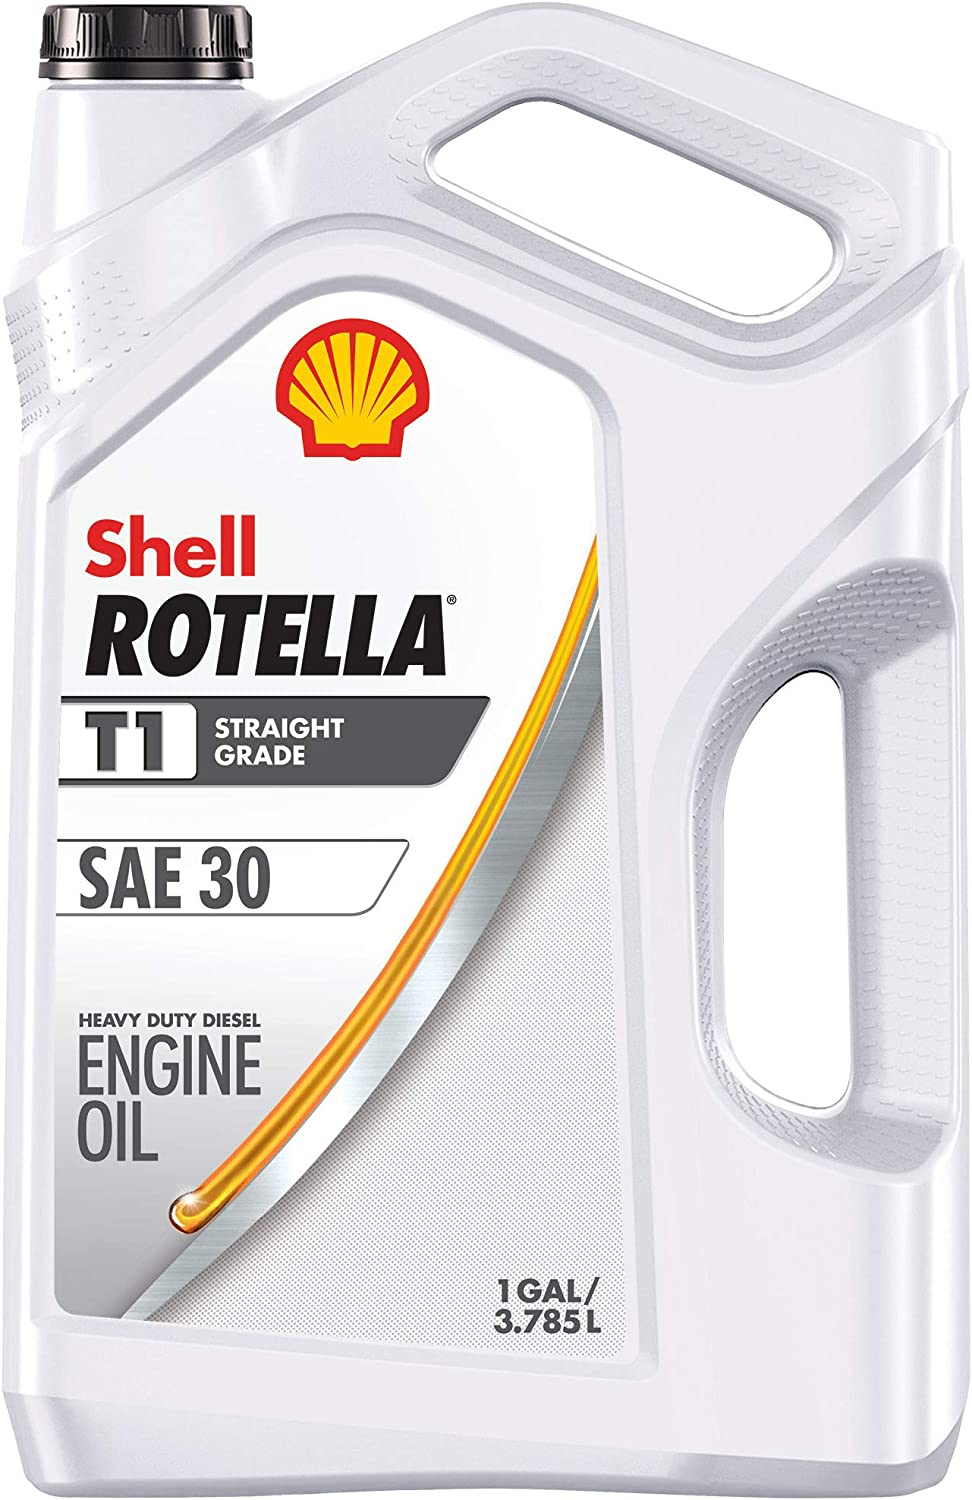 Rotella T1 30 Best Oil For Lawn Mower